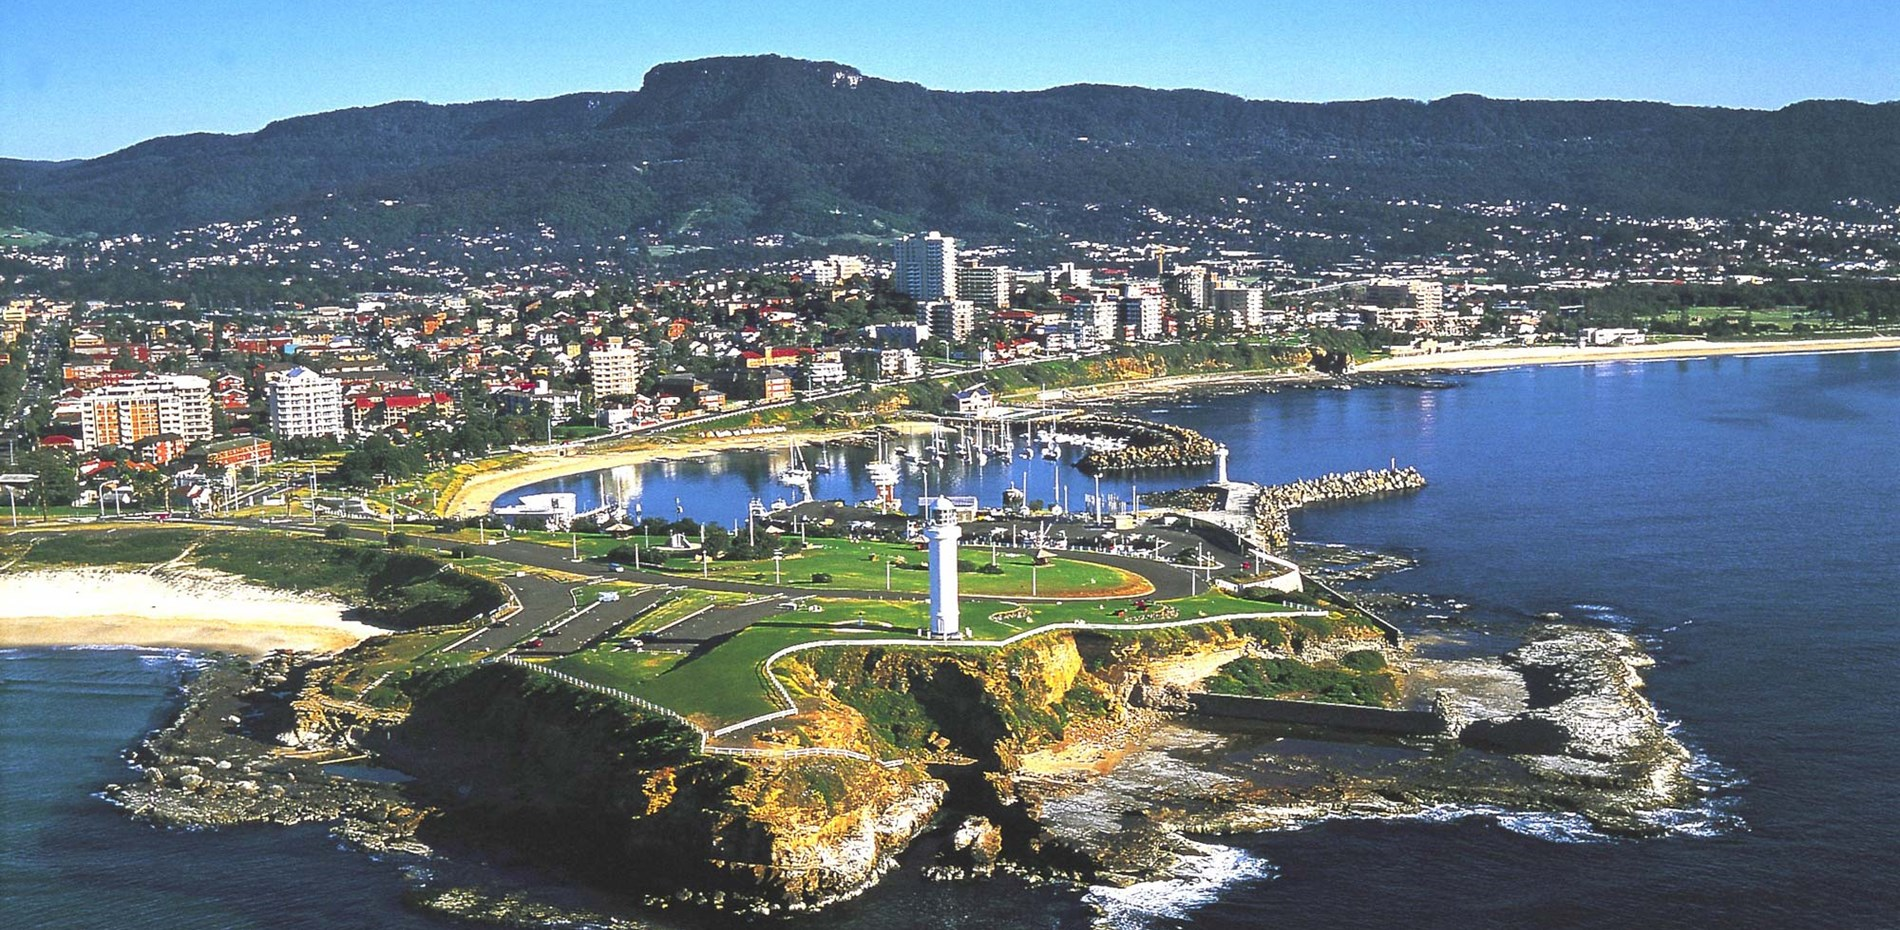 About Wollongong Main Image